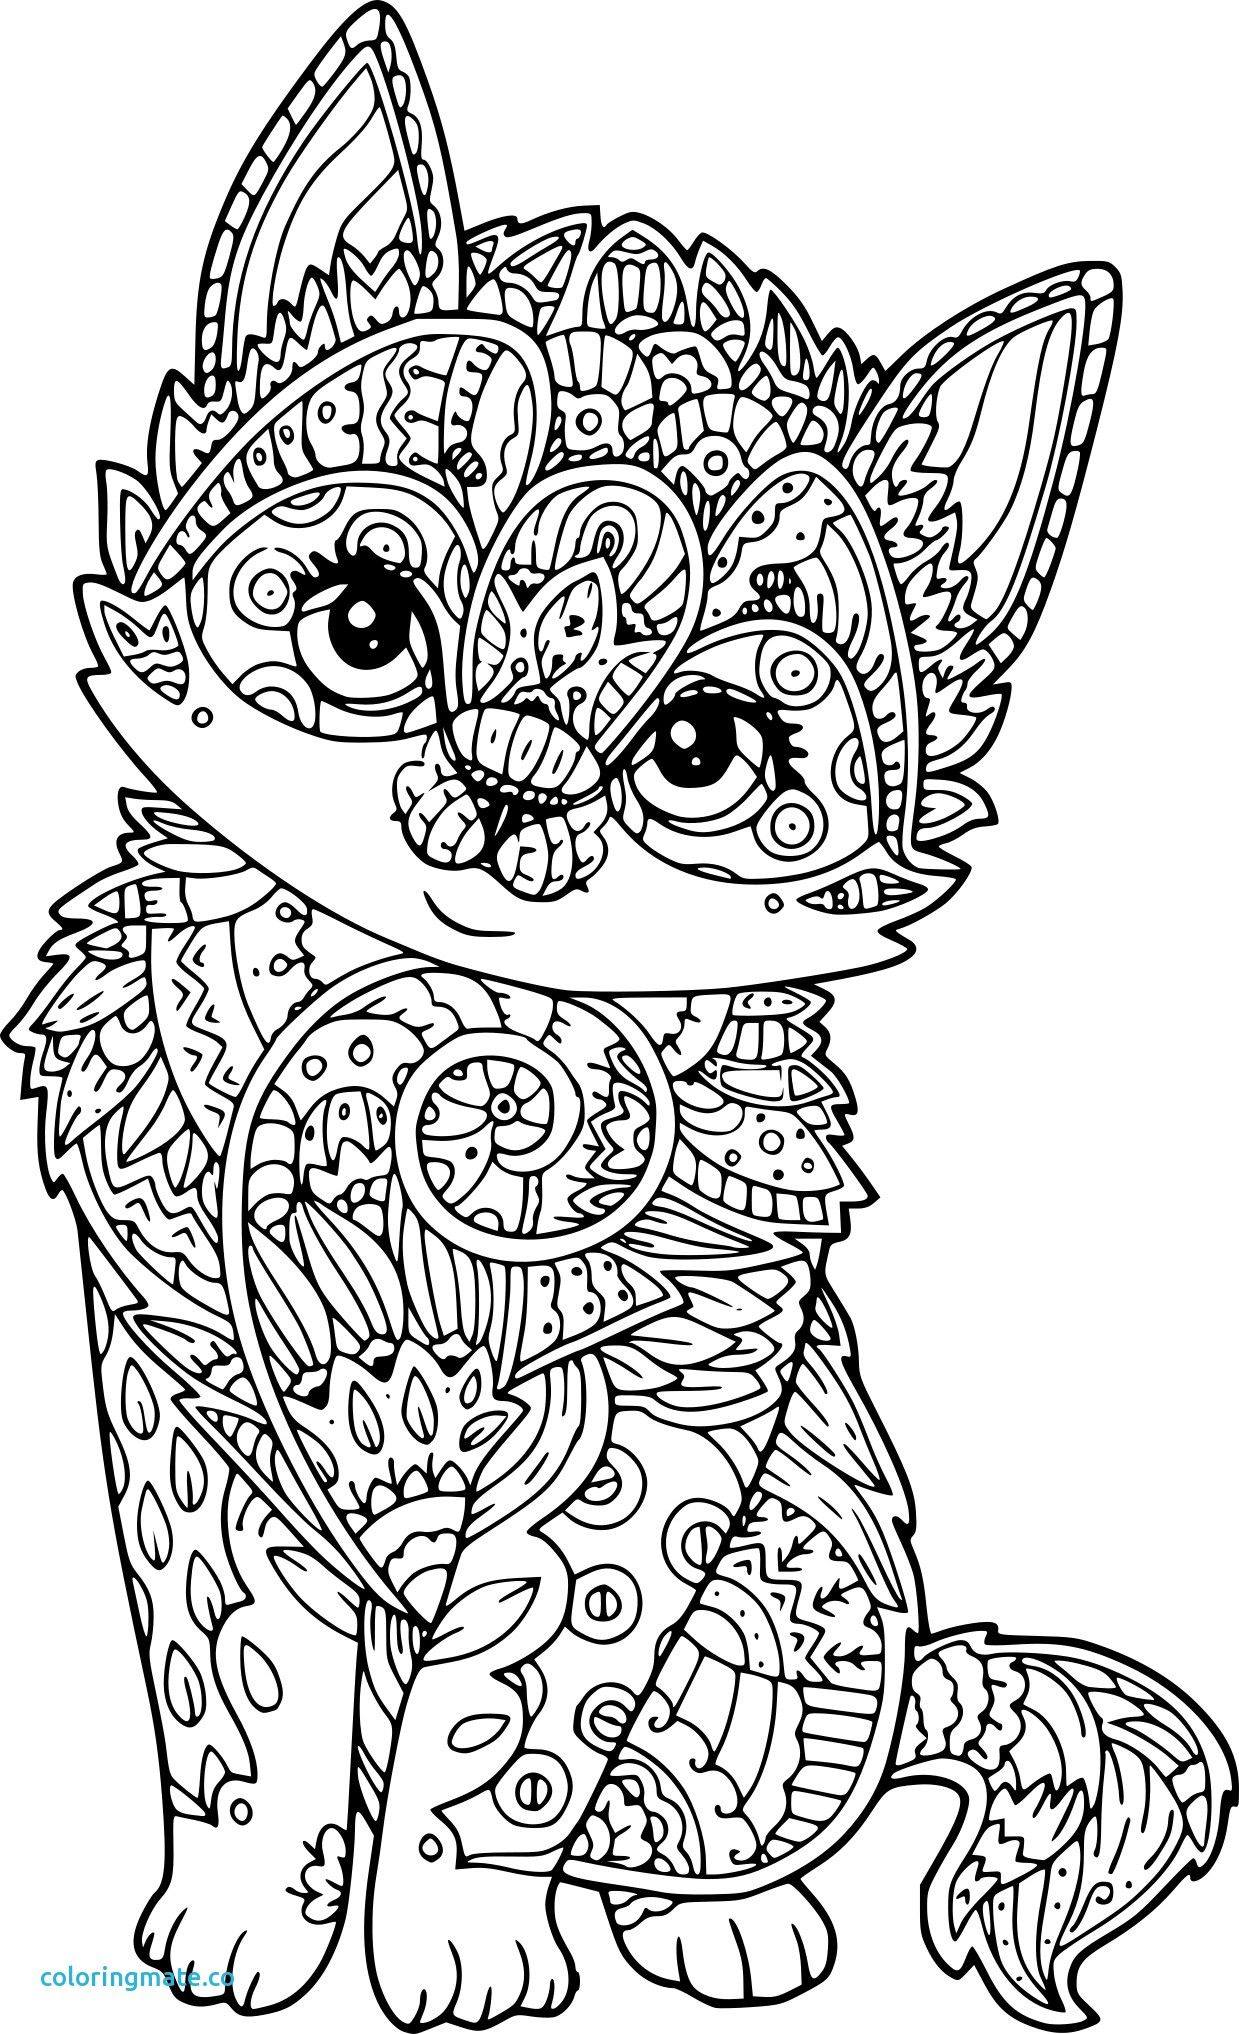 Coloriage mandala chat papillon fresh coloriage chat antistress a imprimer sur coloriages info - Dessin a colorier un chat ...